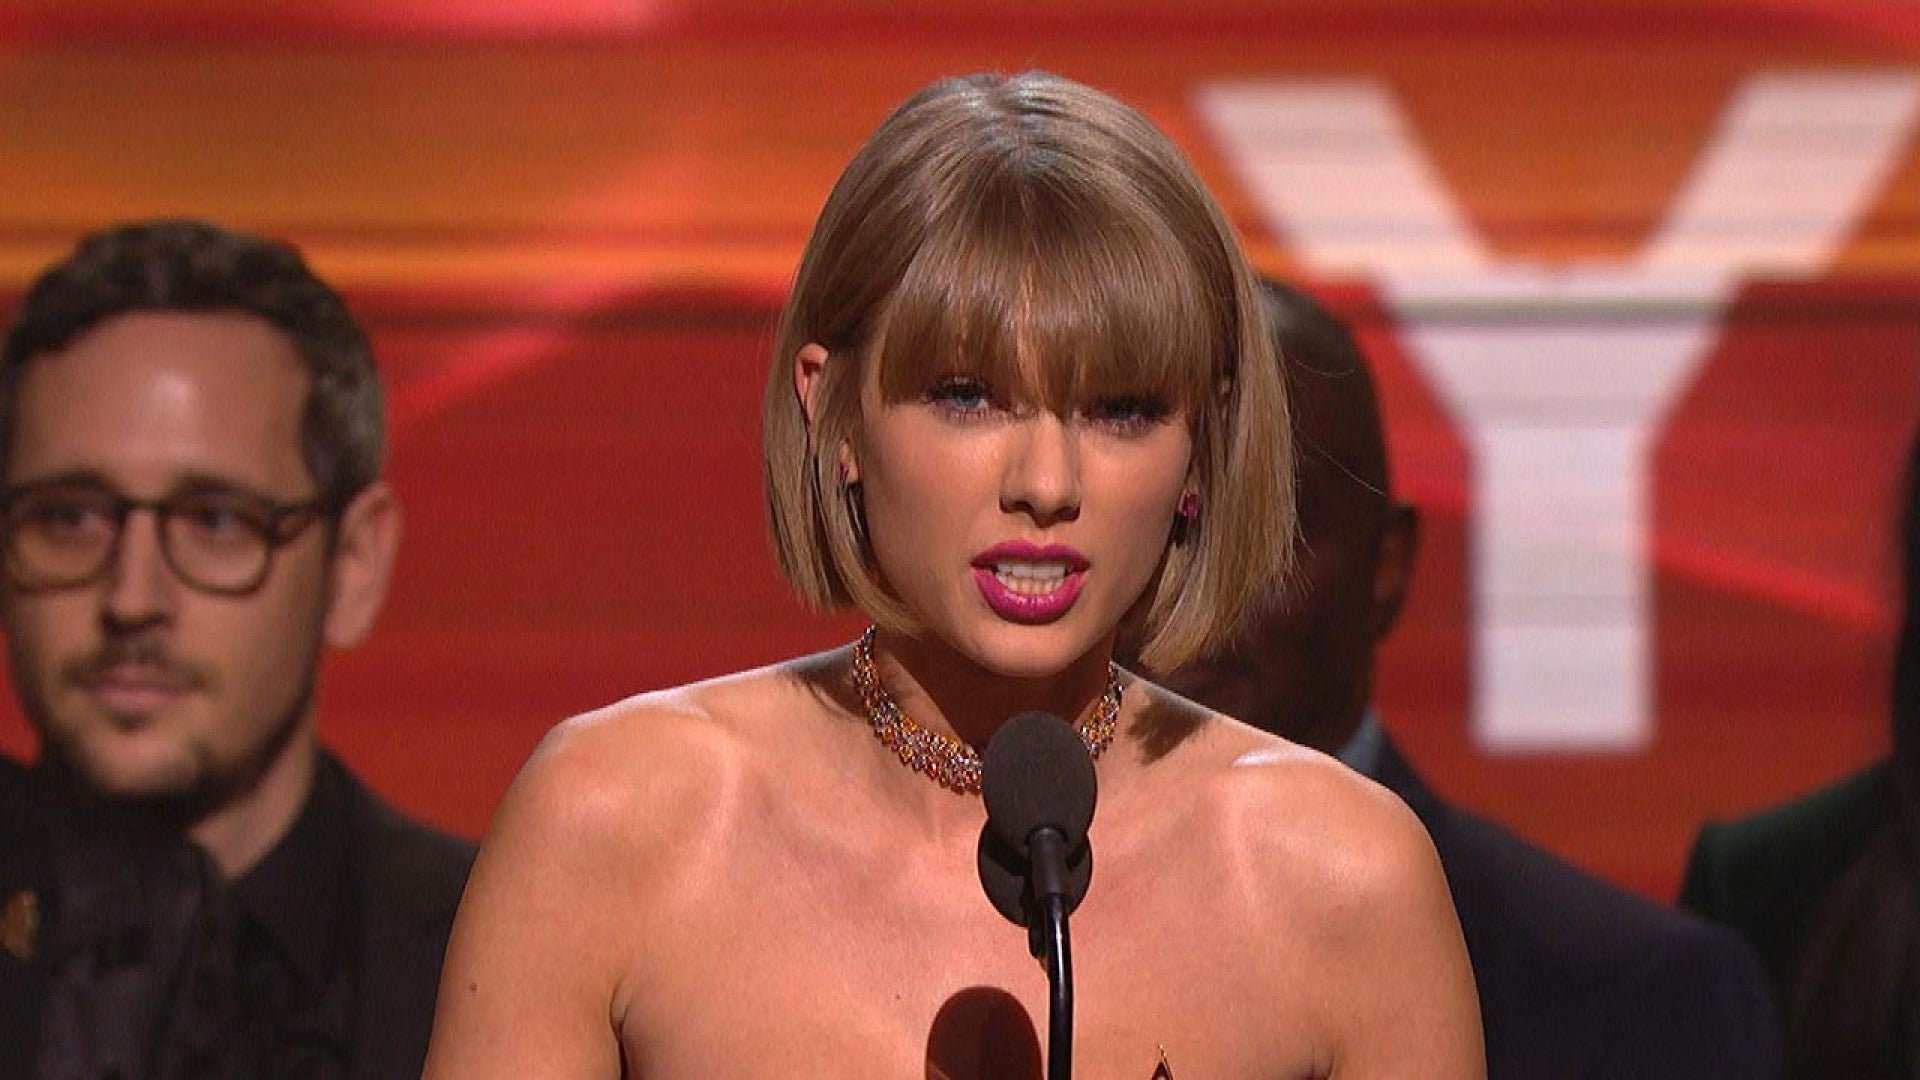 Taylor Swift Slams Kanye West In The Most Epic Way Possible During Grammys Acceptance Speech Entertainment Tonight